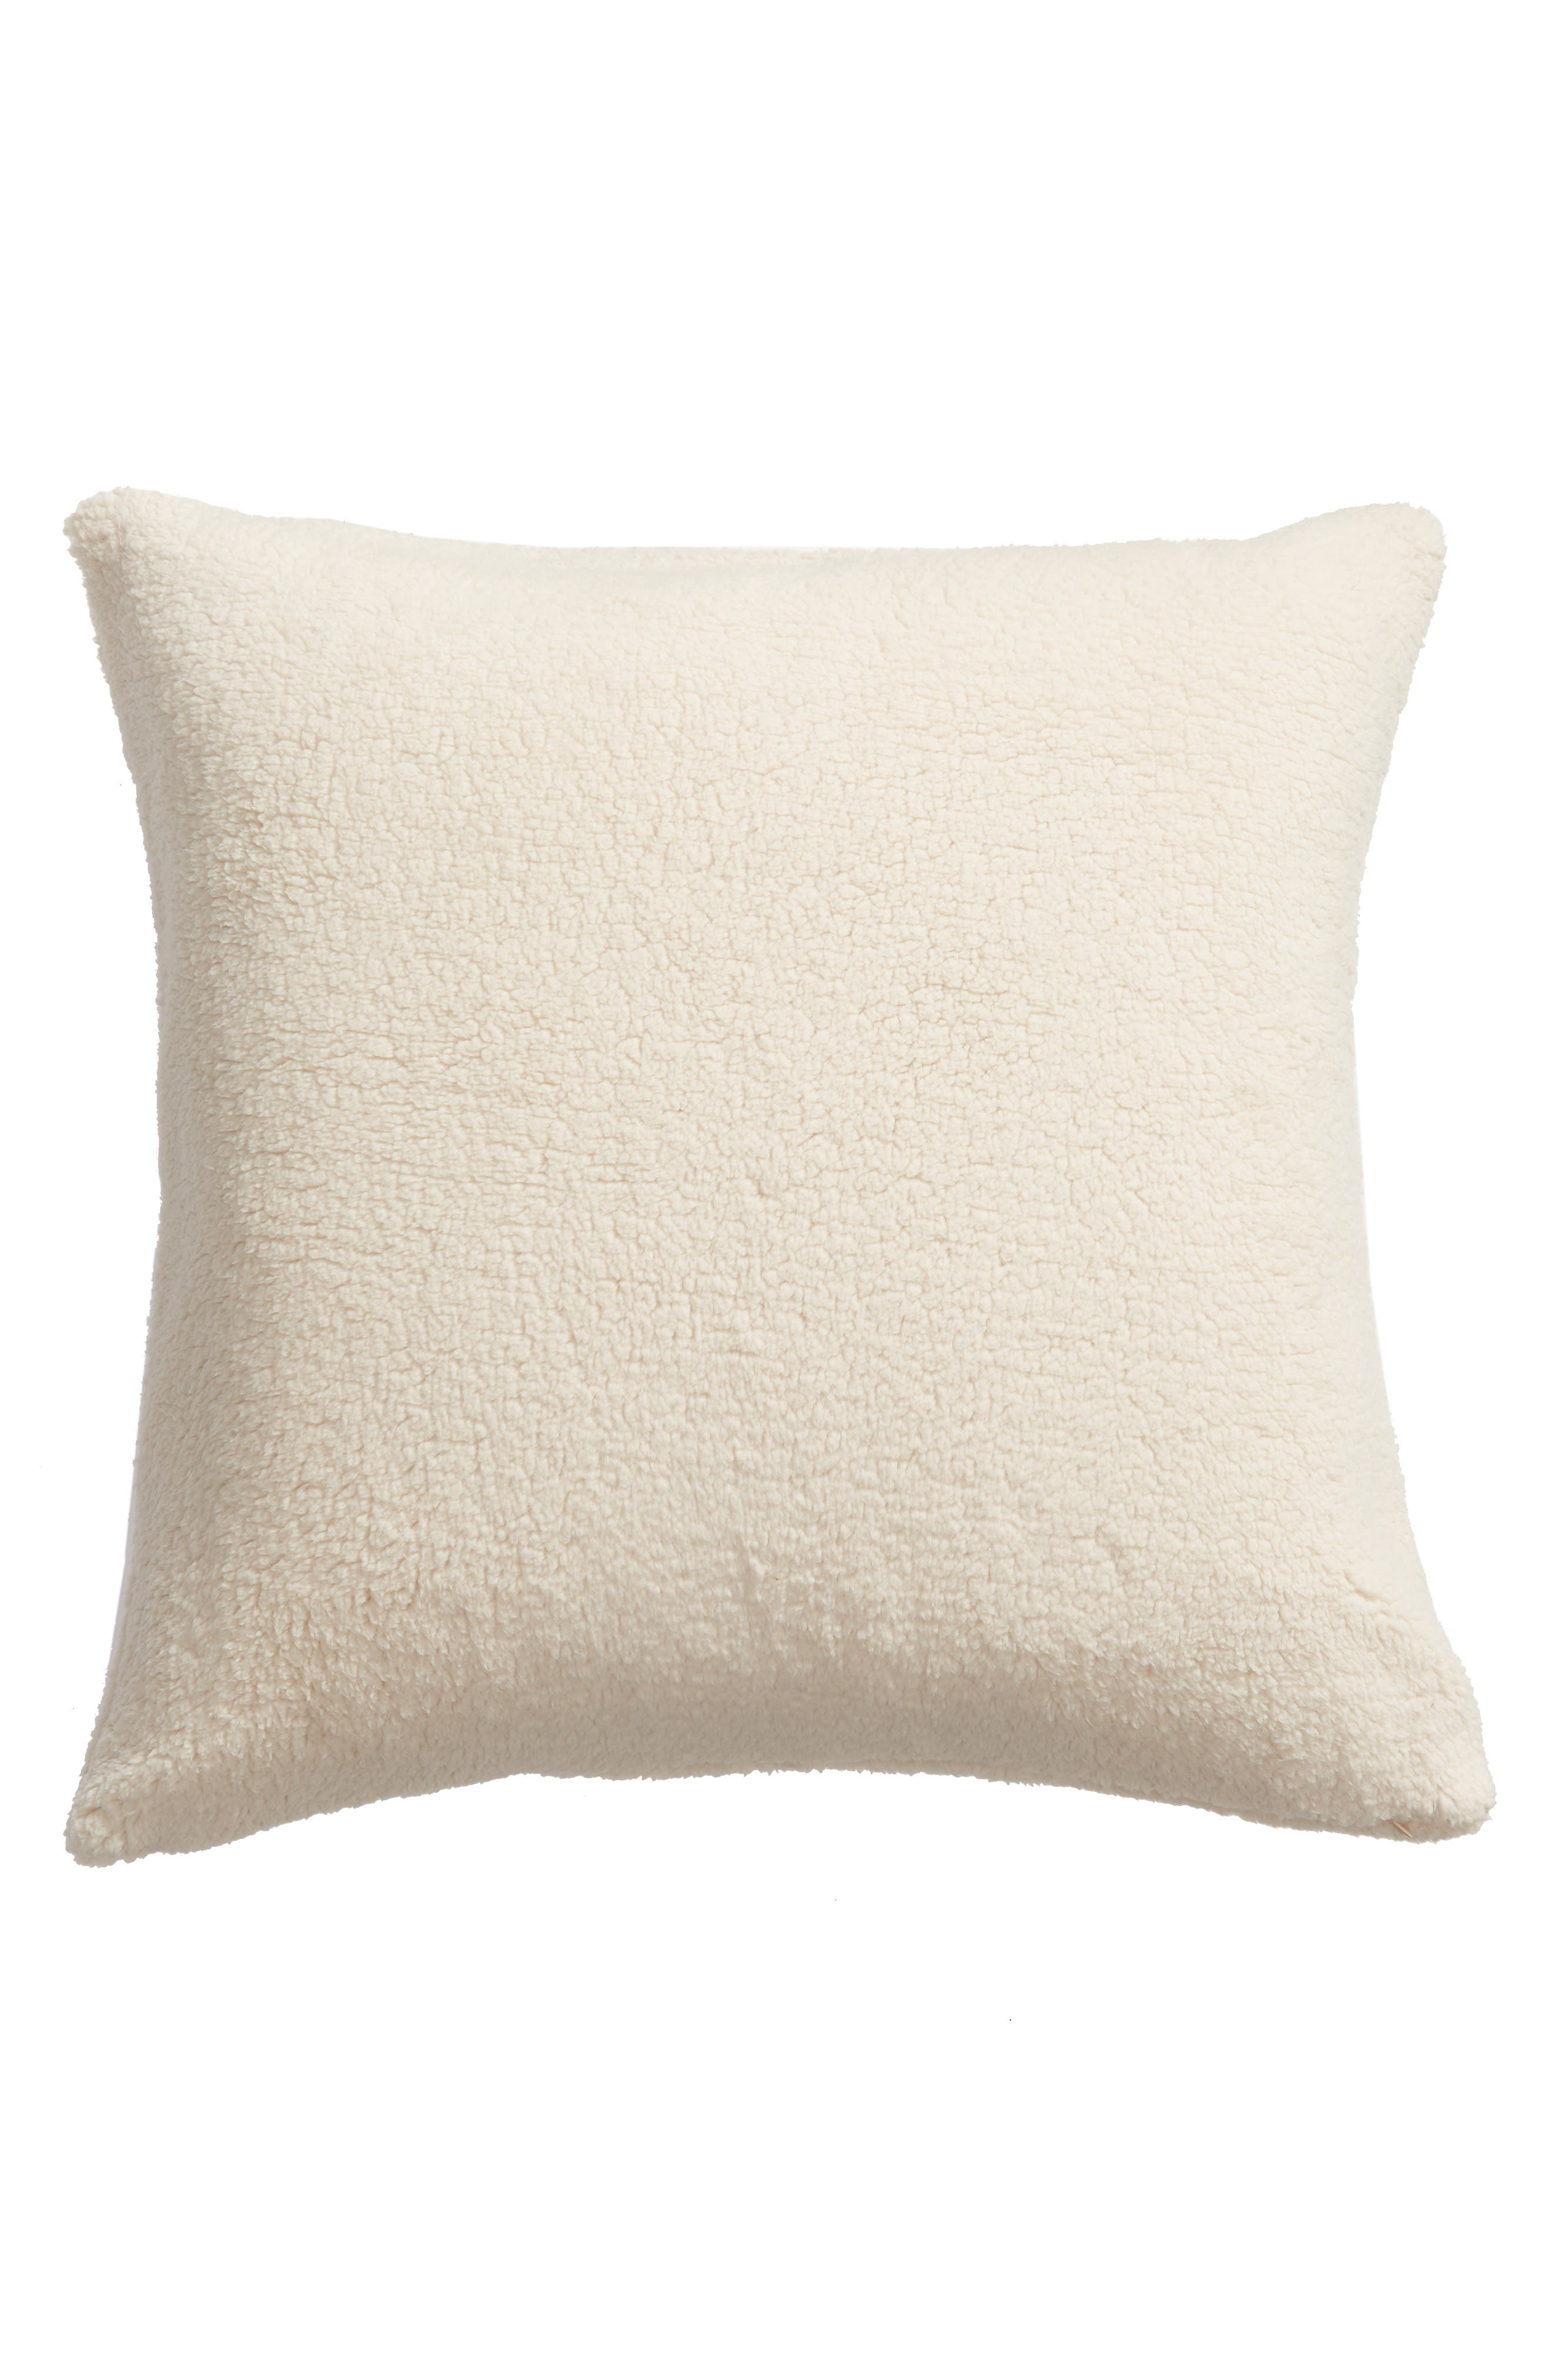 NORDSTROM AT HOME,                             Faux Shearling Accent Pillow,                             Alternate thumbnail 2, color,                             BEIGE OATMEAL